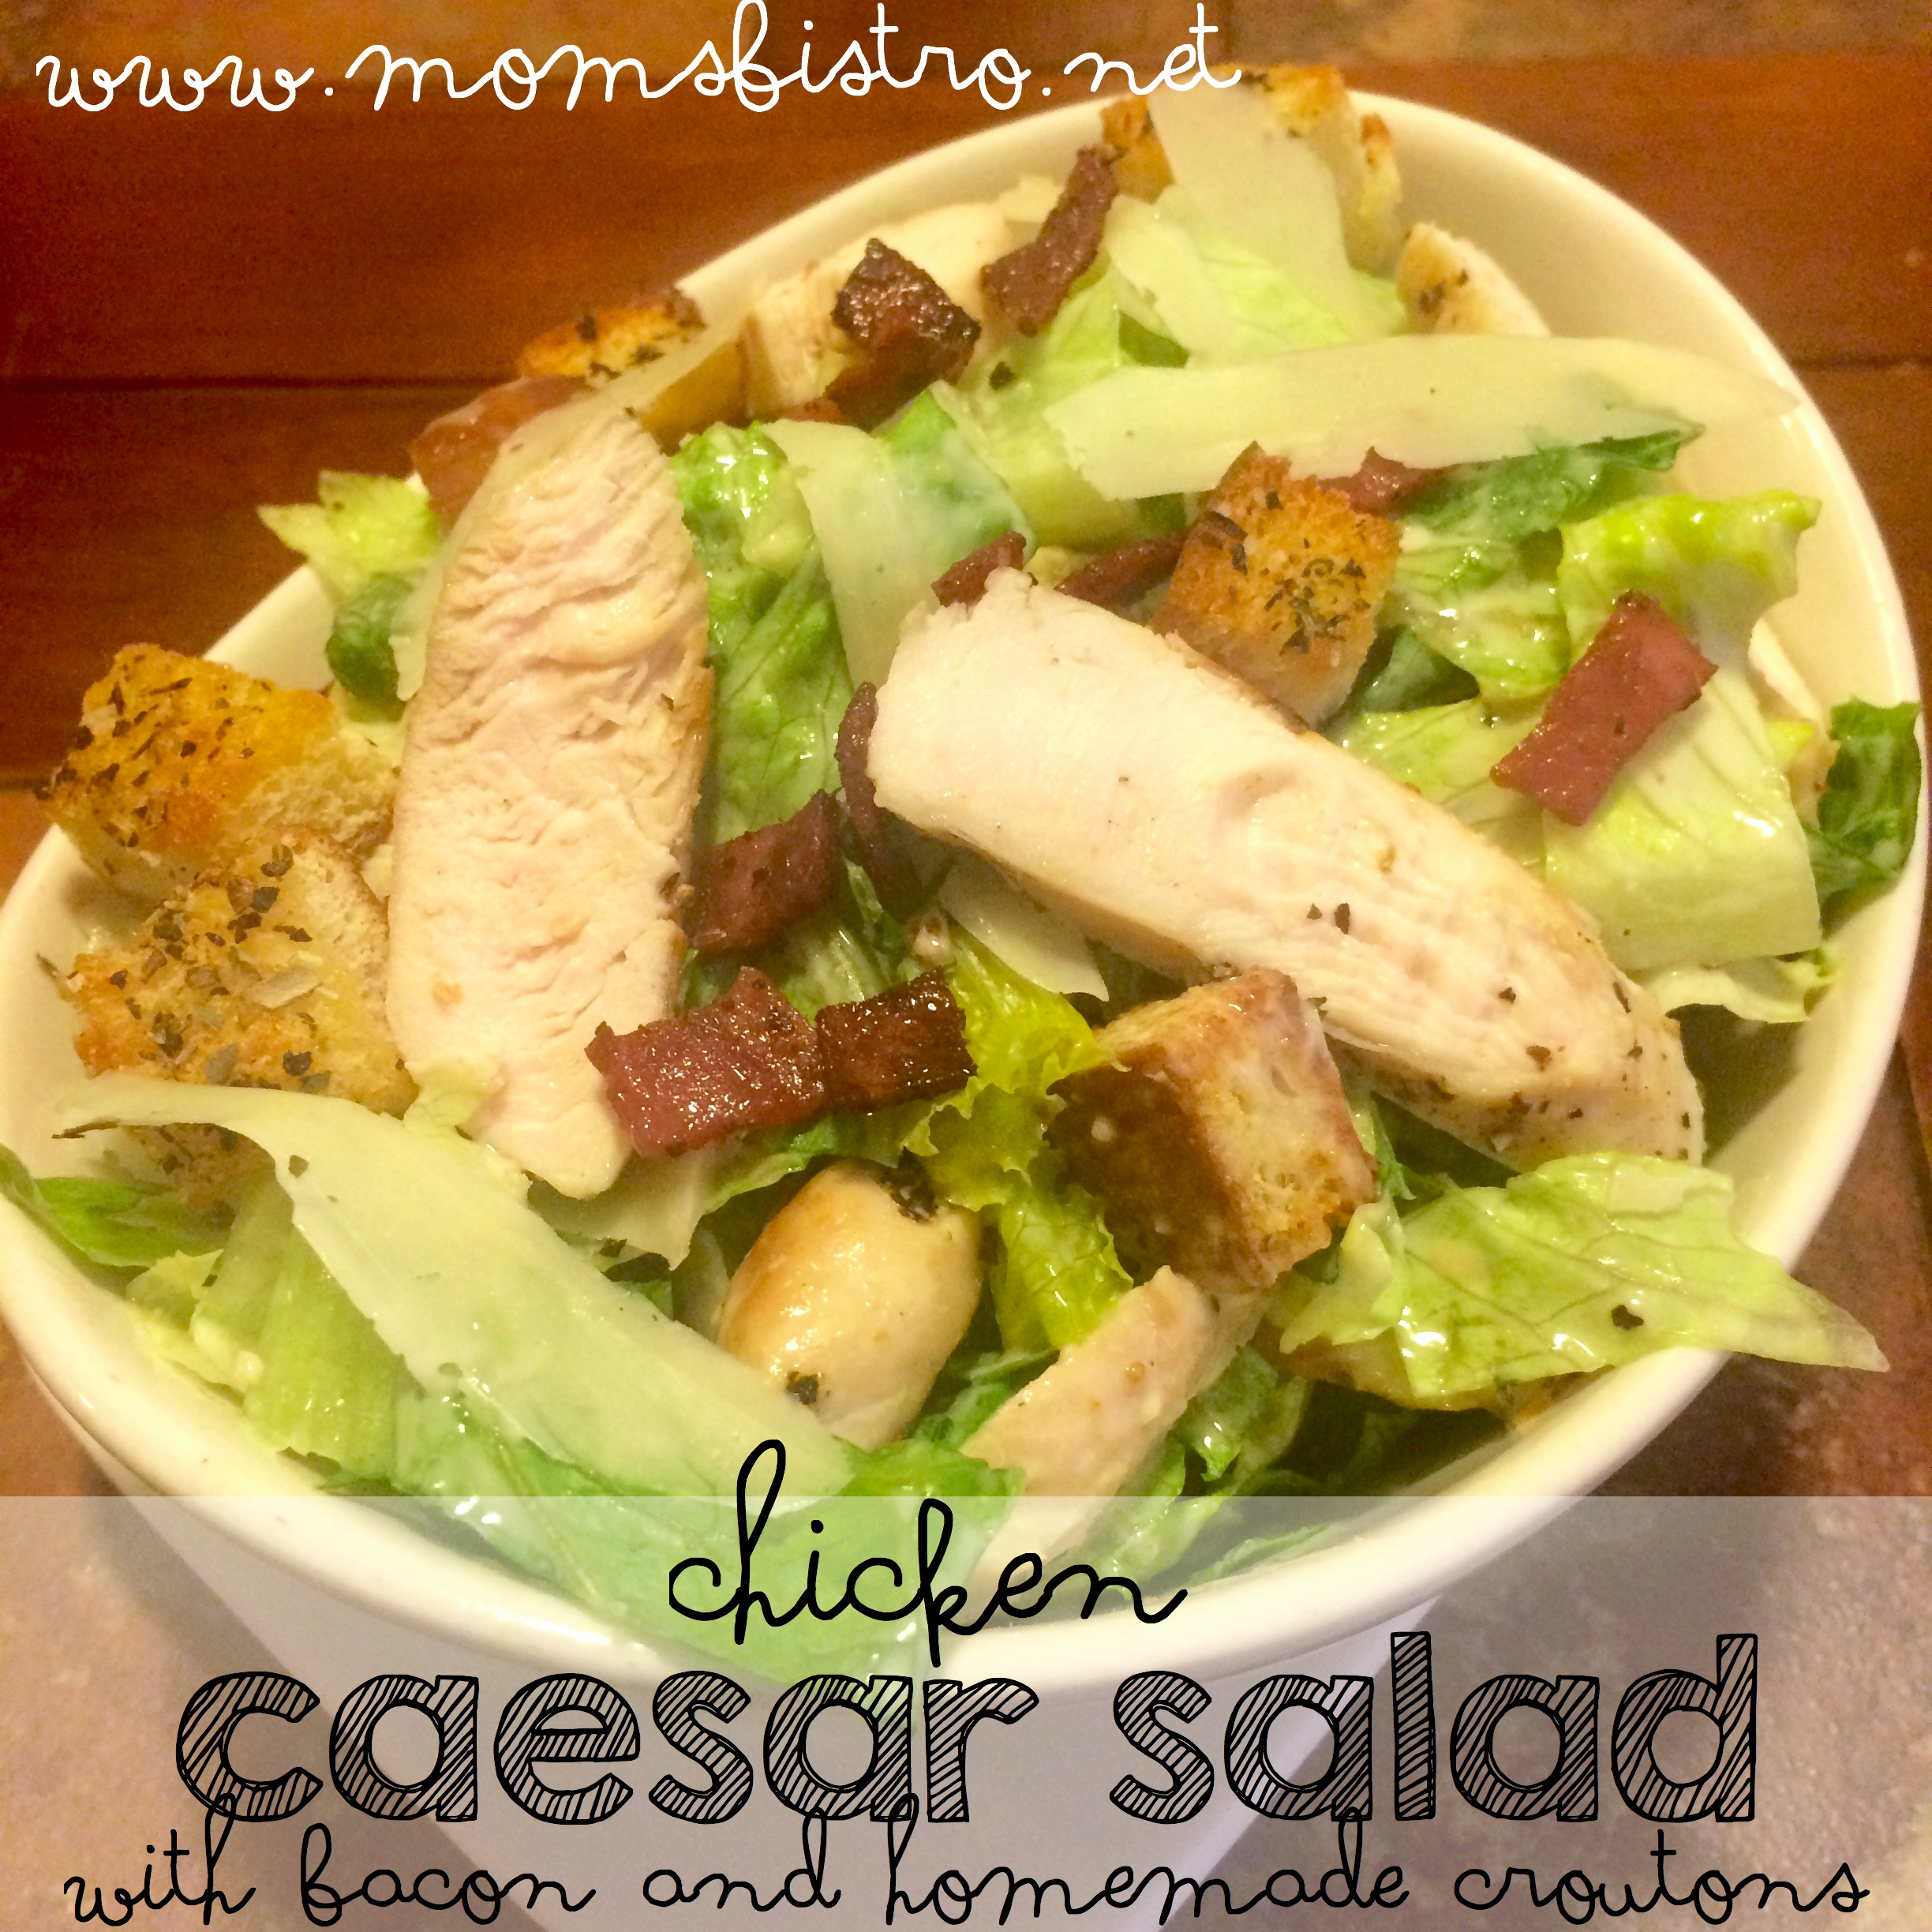 Easy Chicken Breast Recipes Crockpot: Classic Chicken Caesar Salad Recipe With Bacon And